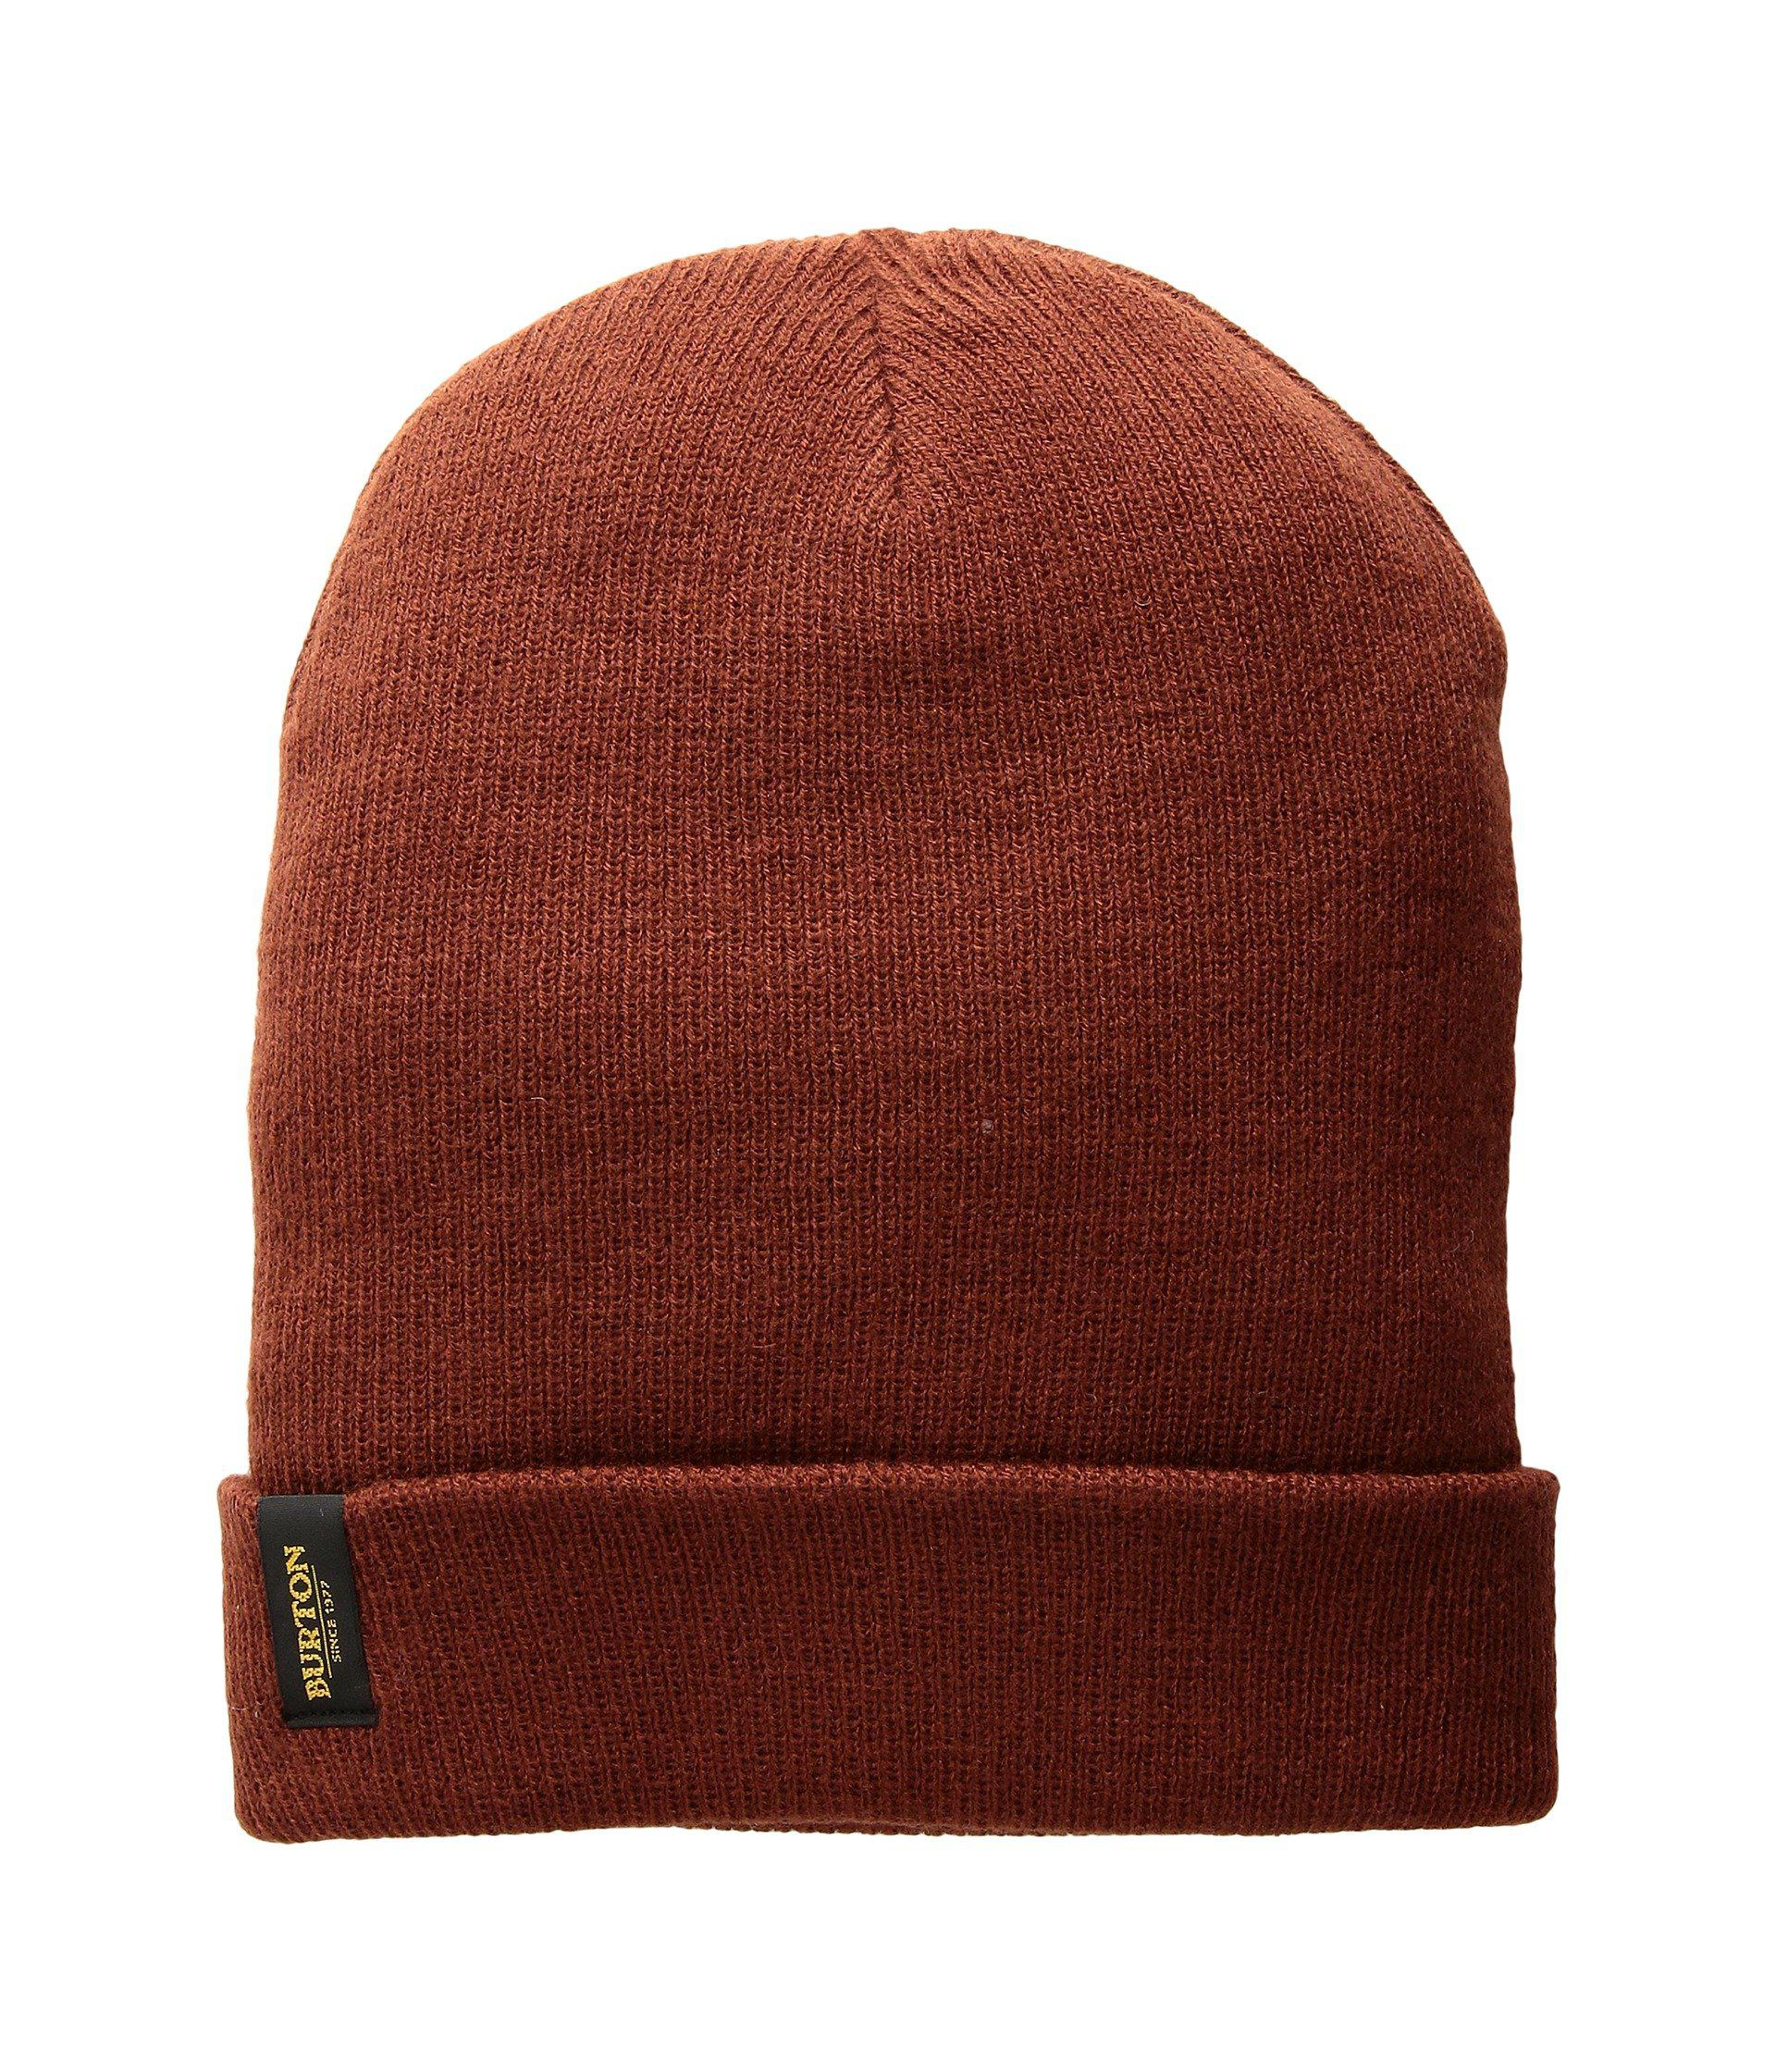 c1ee2bf6f0e Lyst - Burton Kactusbunch Beanie (faded 1) Beanies in Red for Men